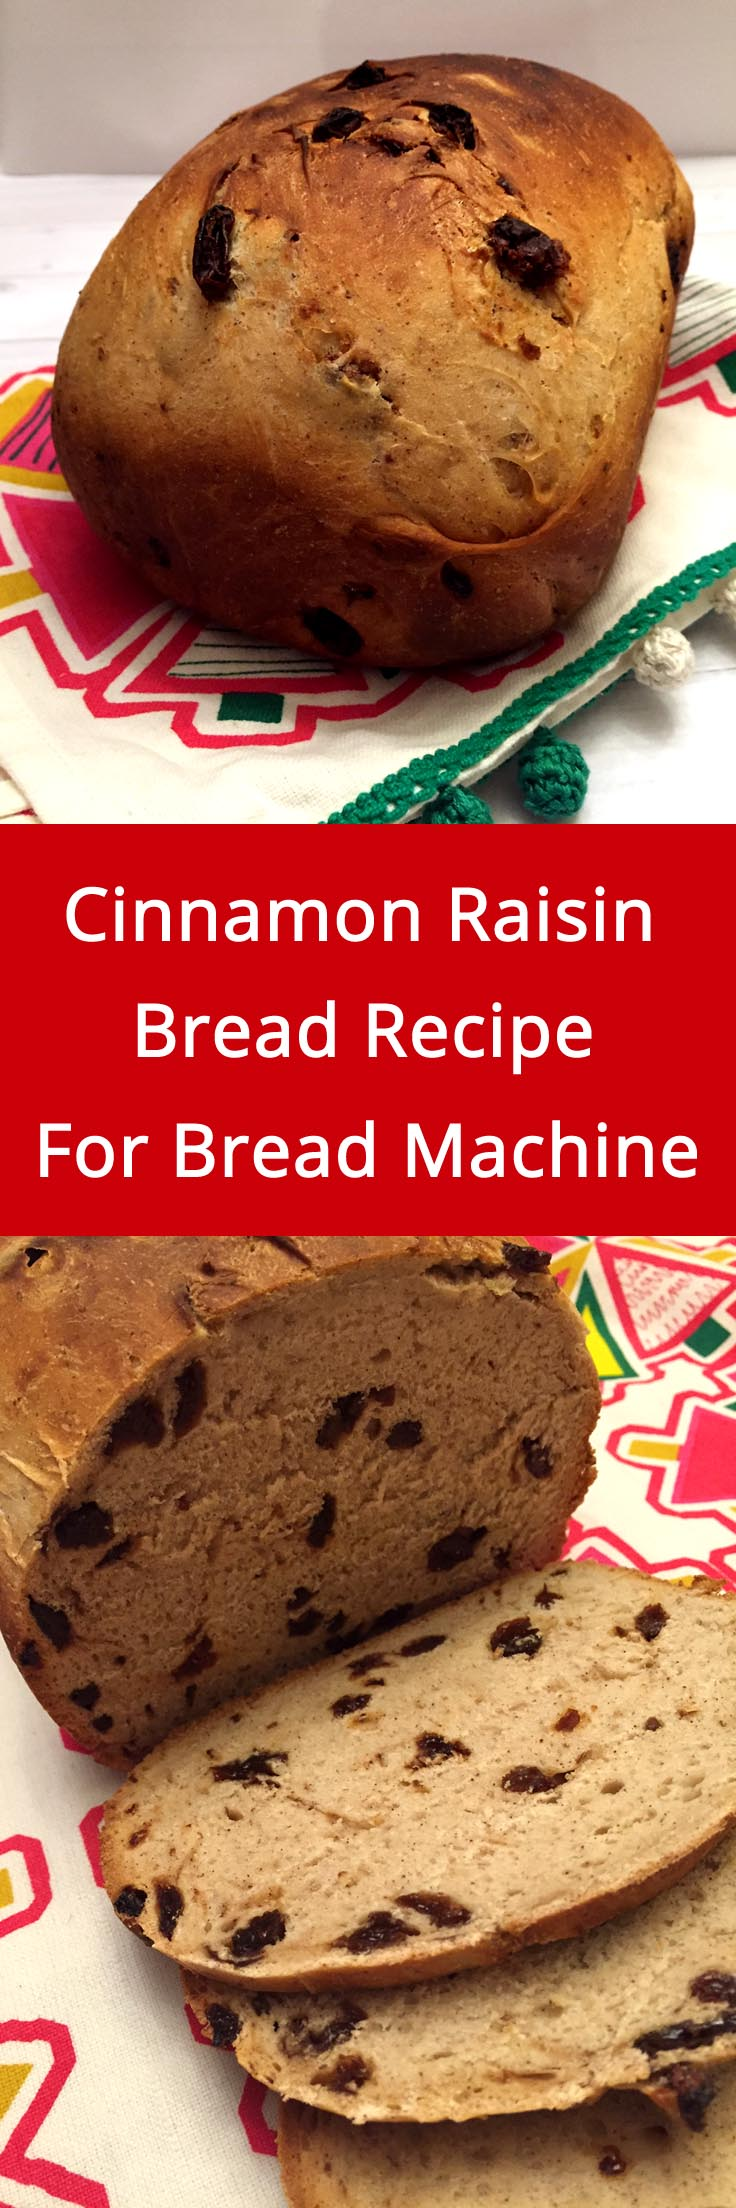 Cinnamon Raisin Bread Recipe For Bread Machine